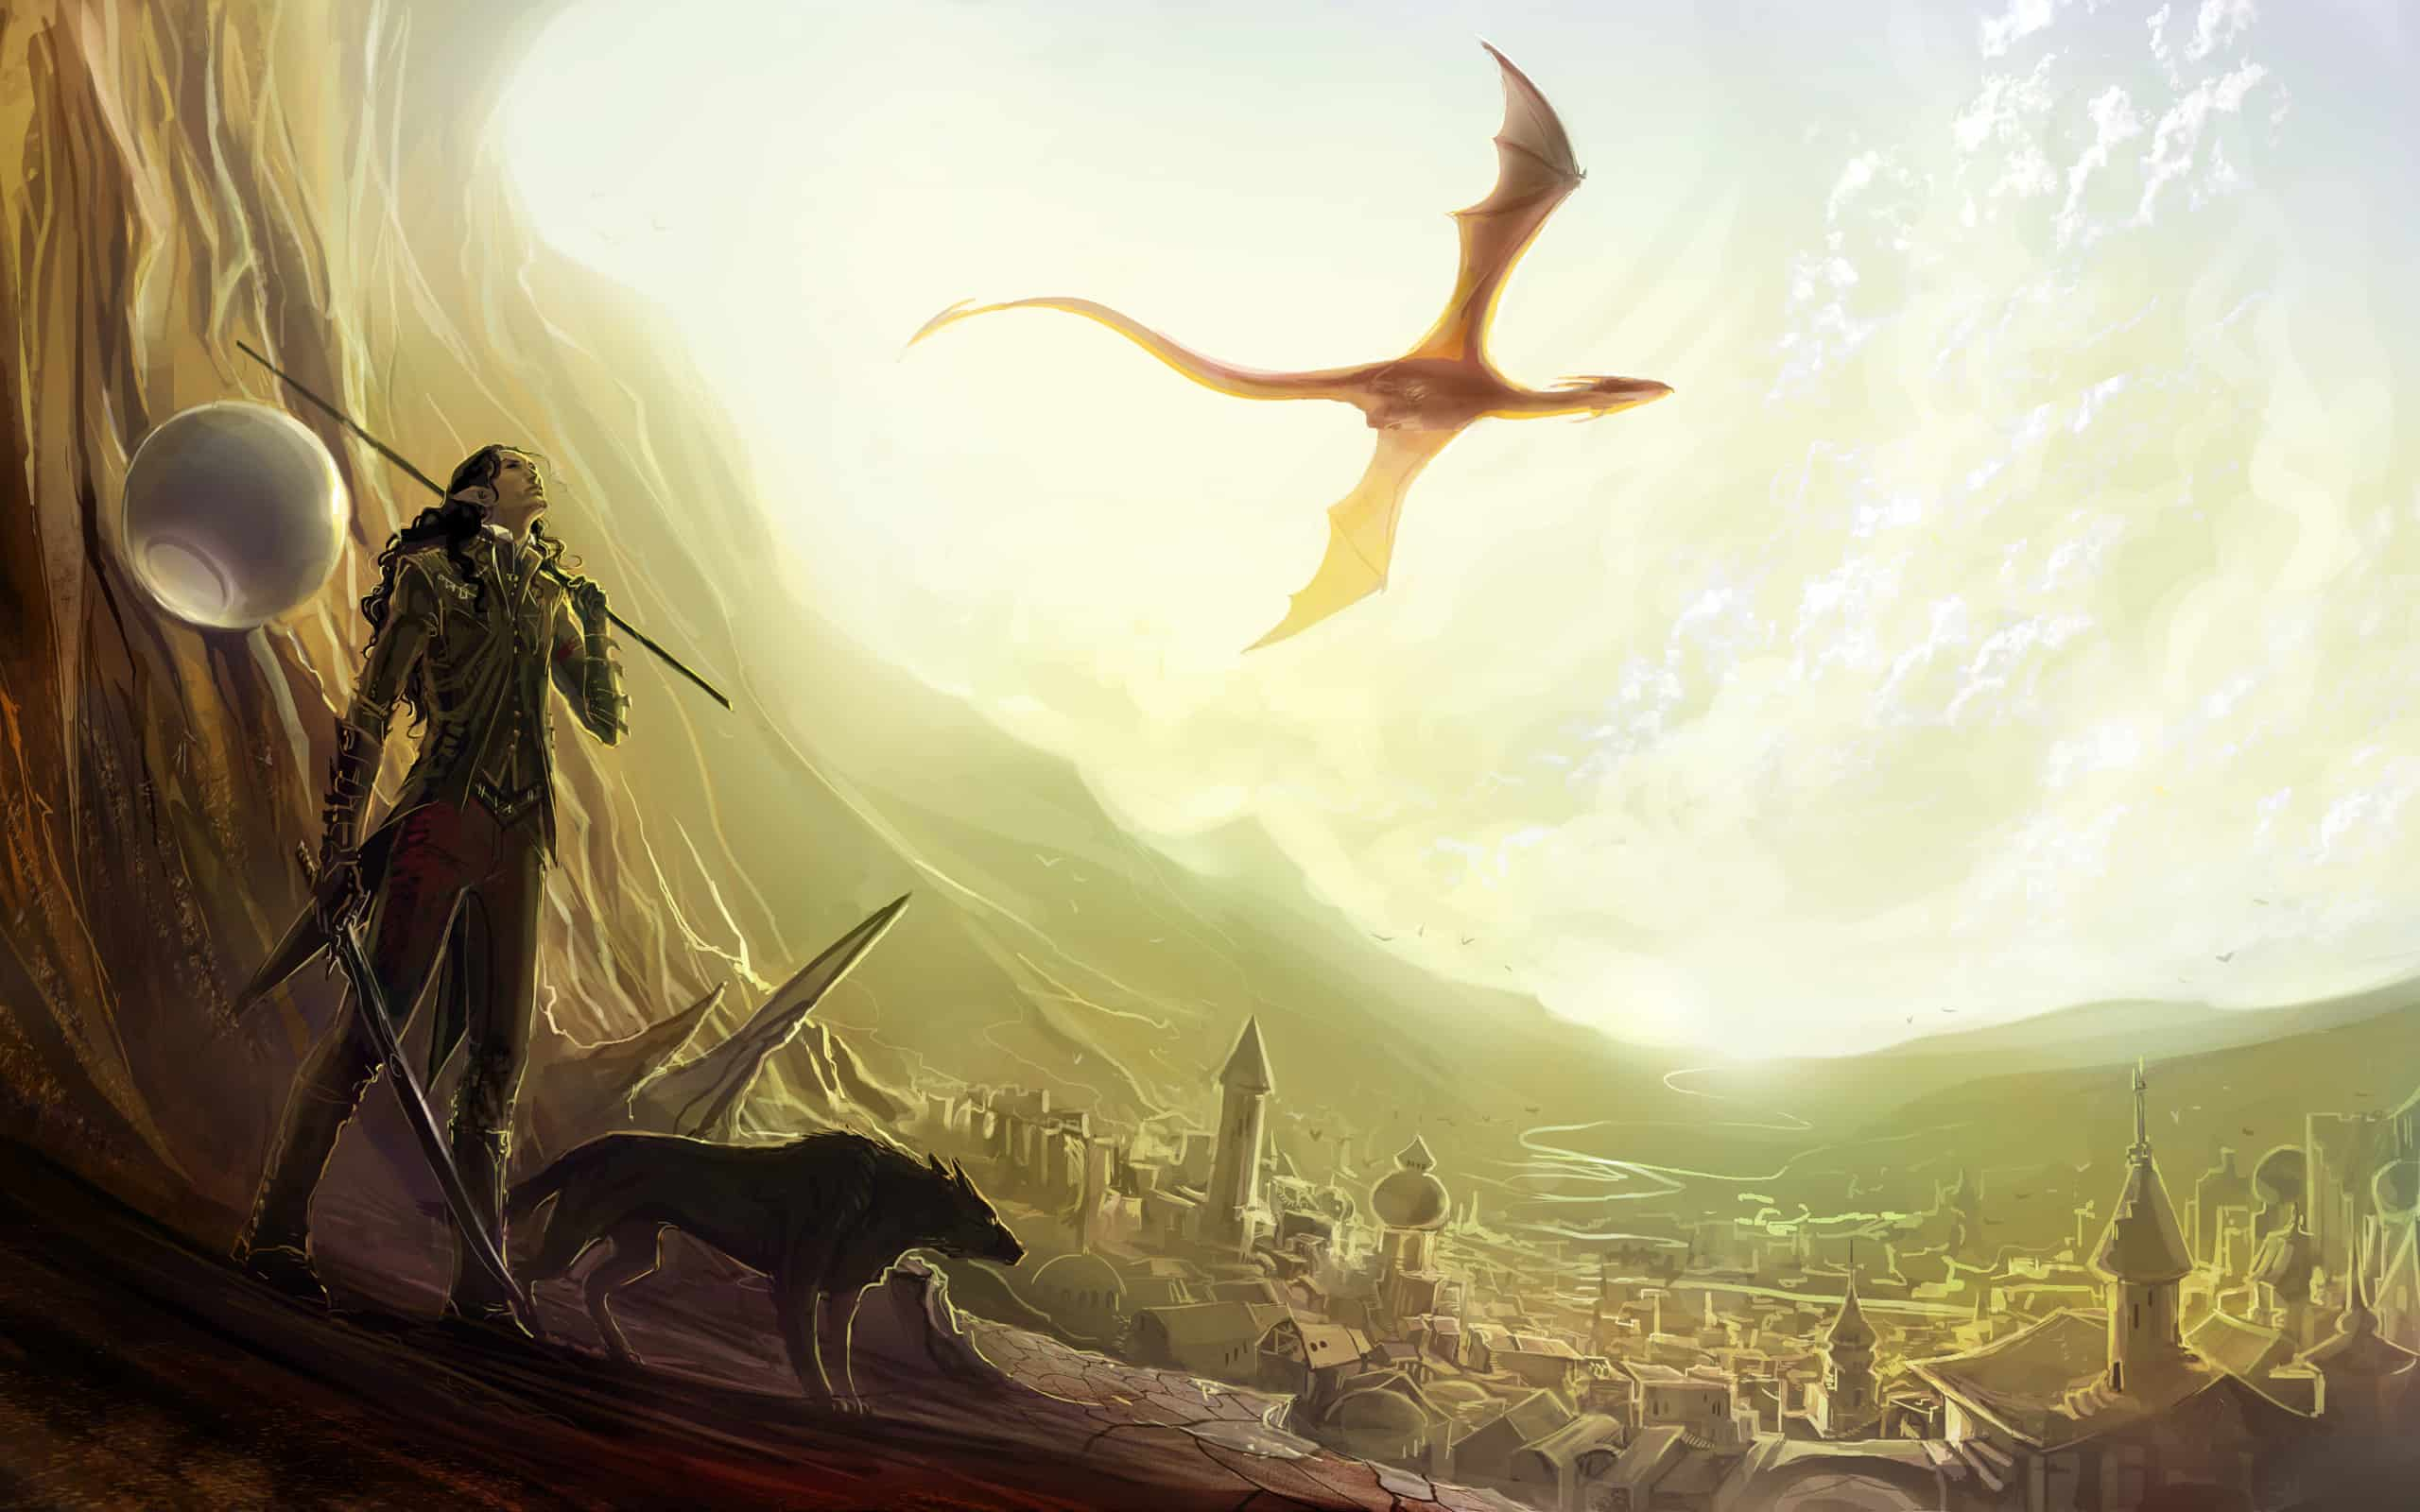 a mountain with a girl standing, looking at a dragon flying in the sky